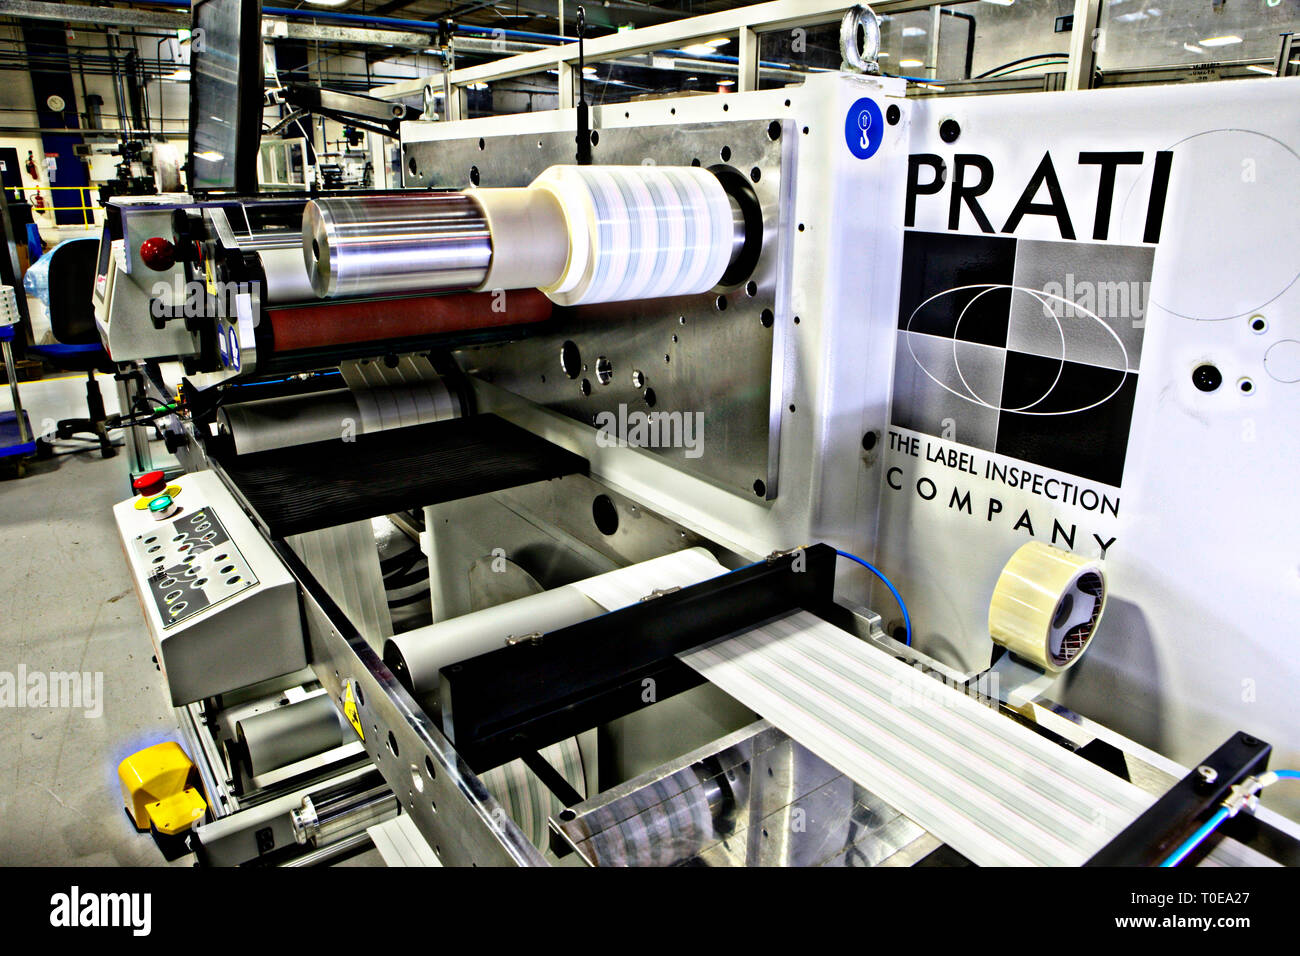 Industrial Machinery used in the printing of pharmaceutical packaging - Stock Image